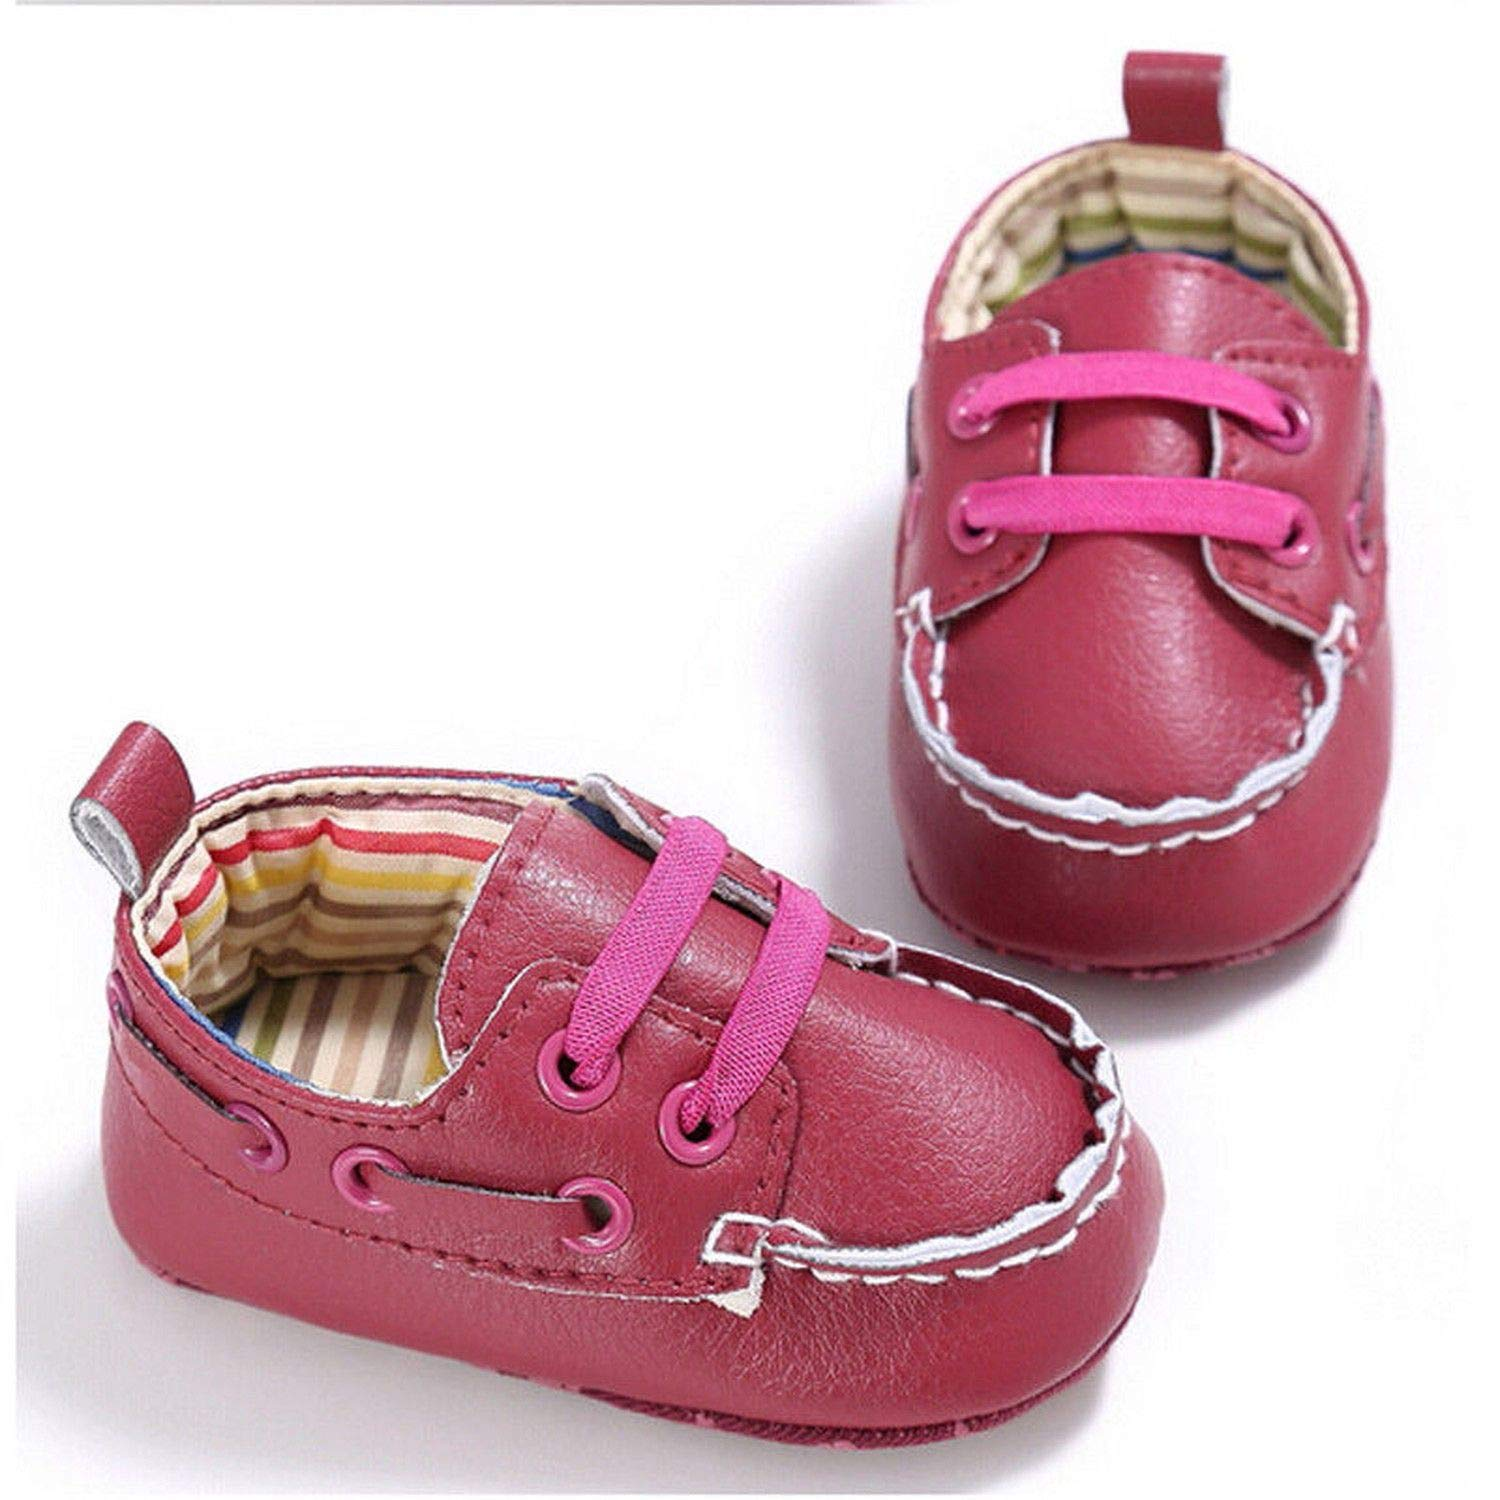 Baby Newborn Toddler Infant Shoes Boy Girl Soft Sole Crib Shoes